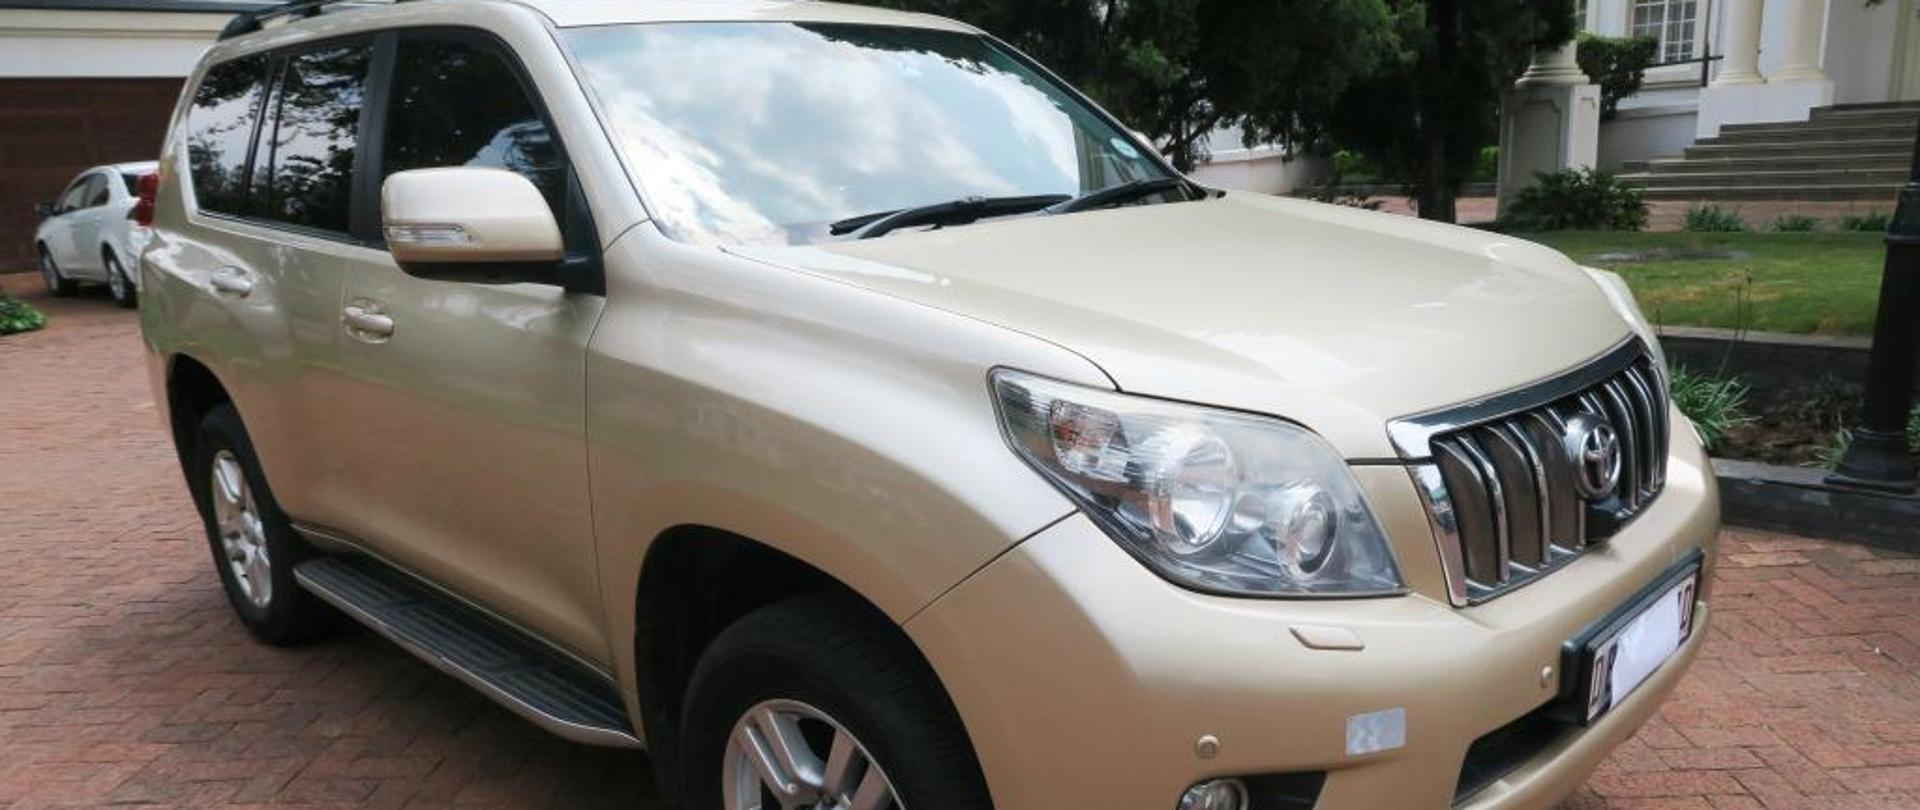 The Embassy of the Republic of Poland in Pretoria announces a tender for the sale of Toyota Prado